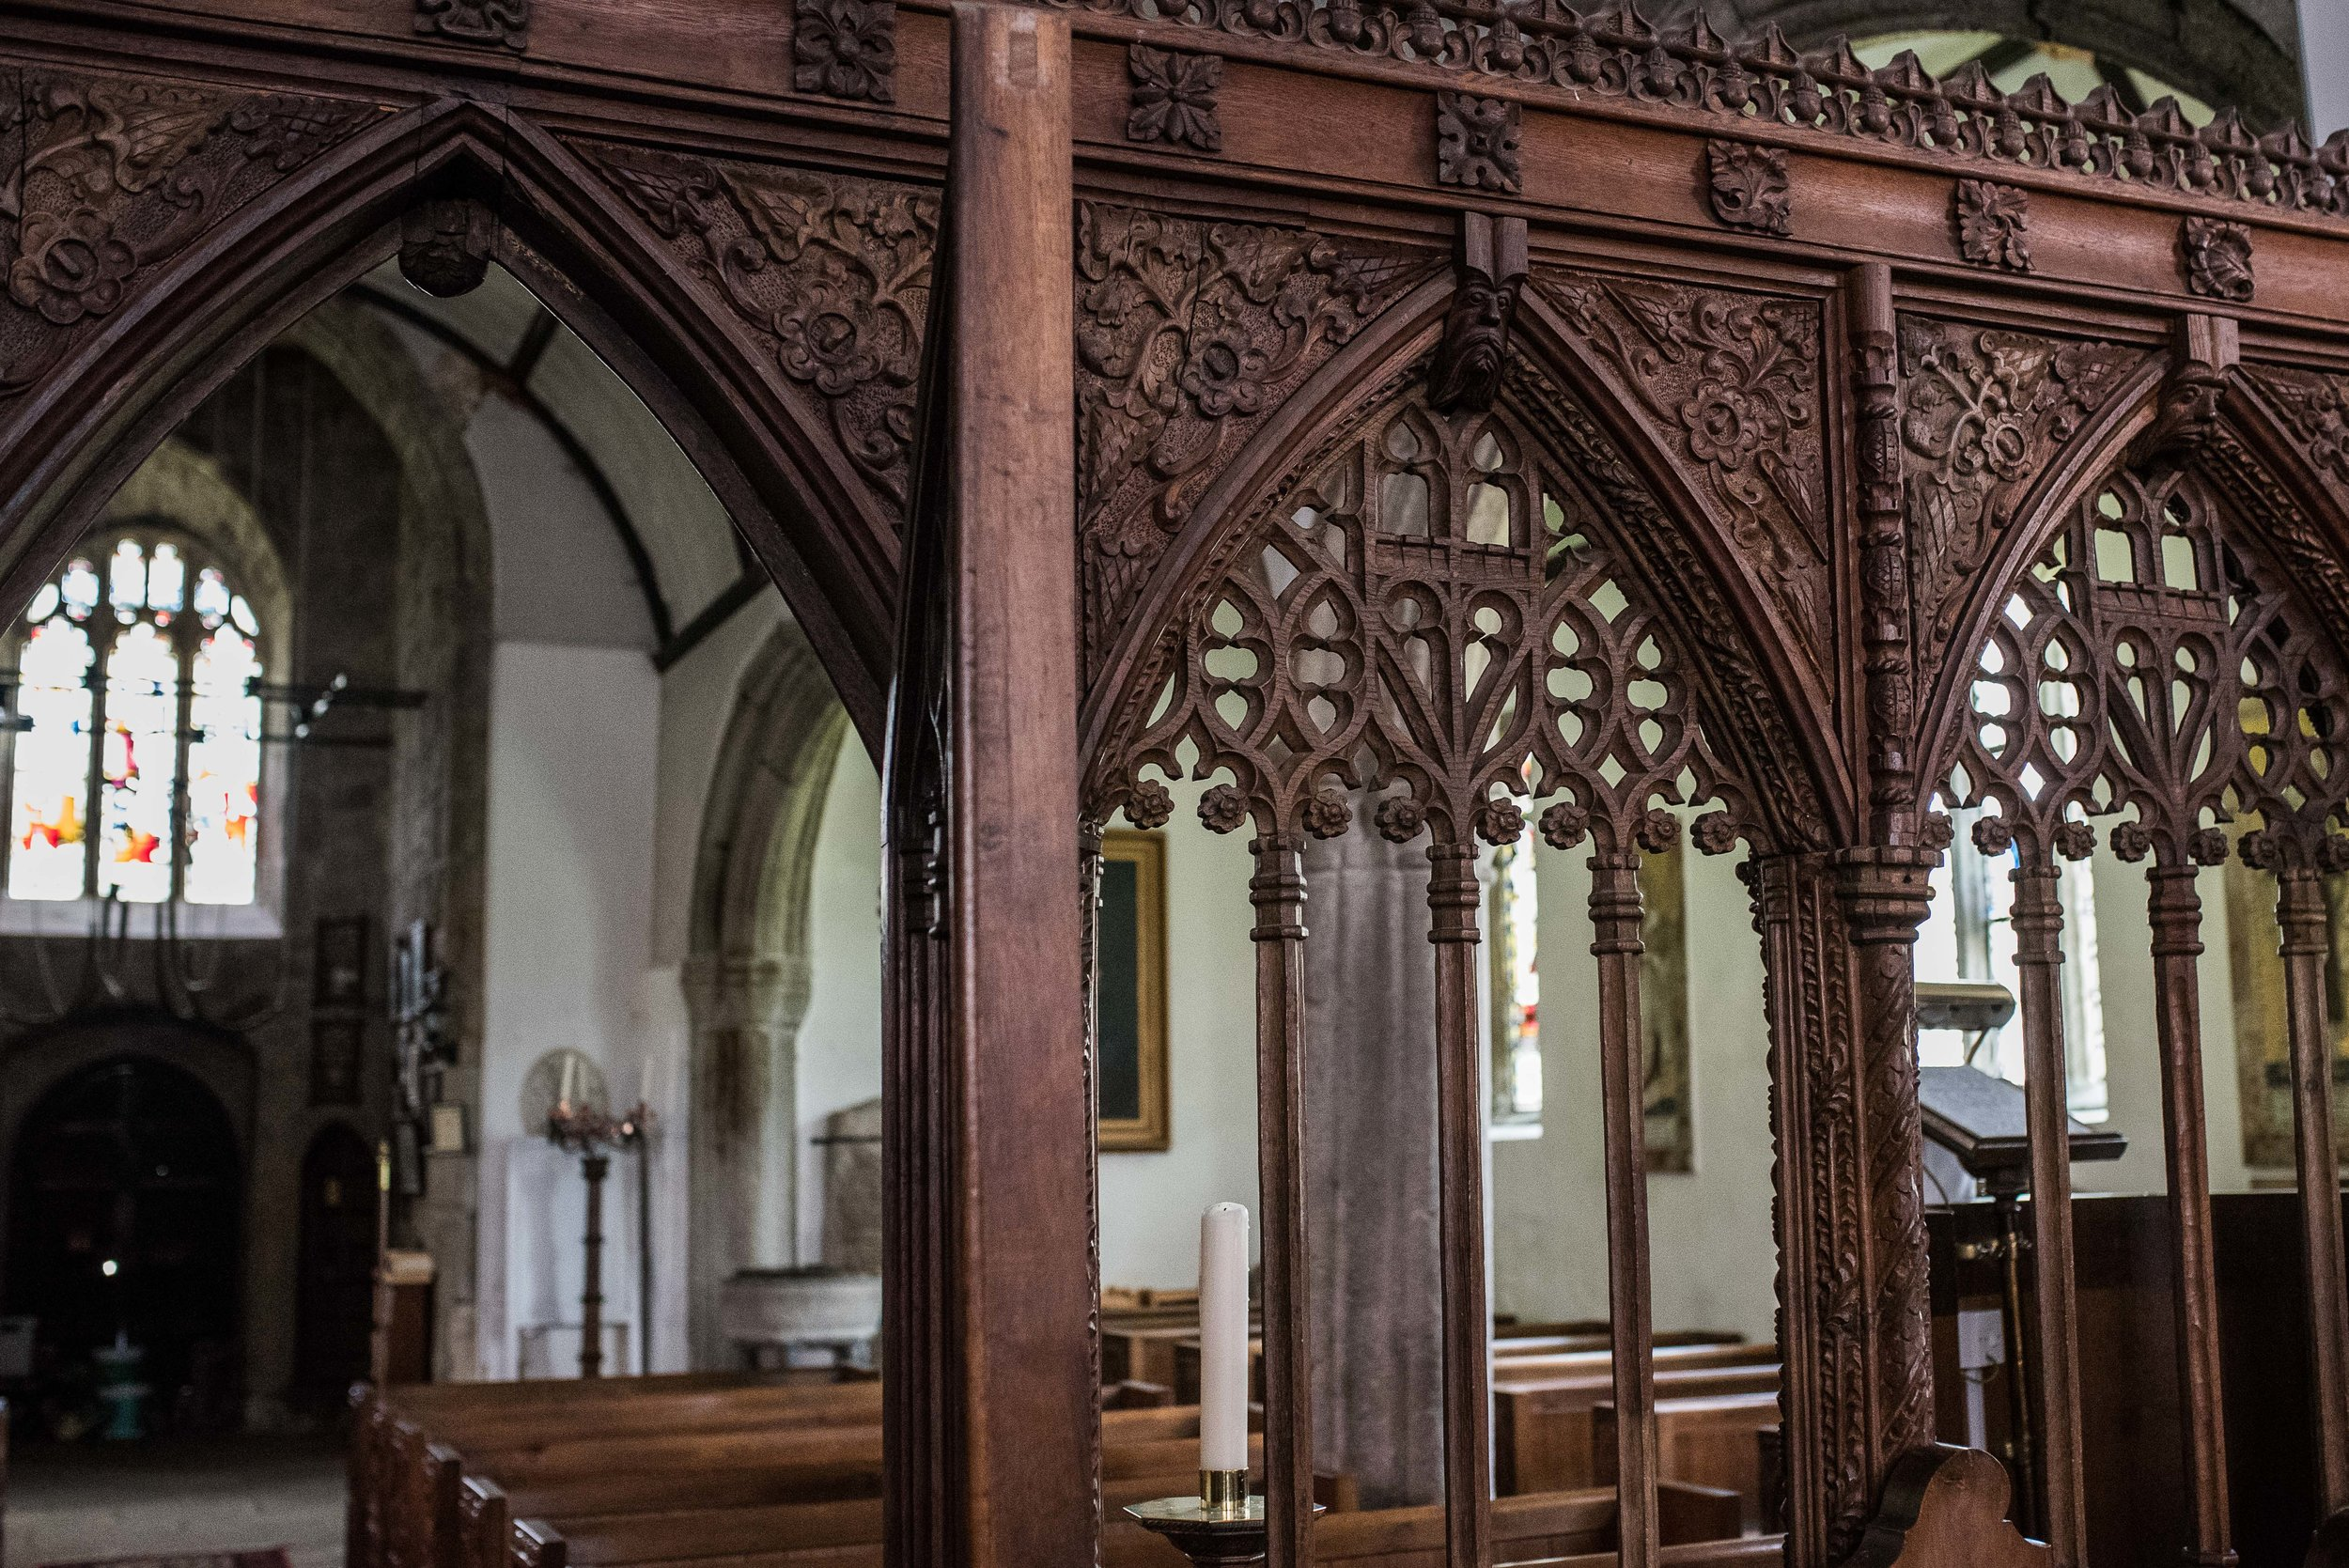 All of the detail and columns inside each arch was hand-carved from a single block of wood.